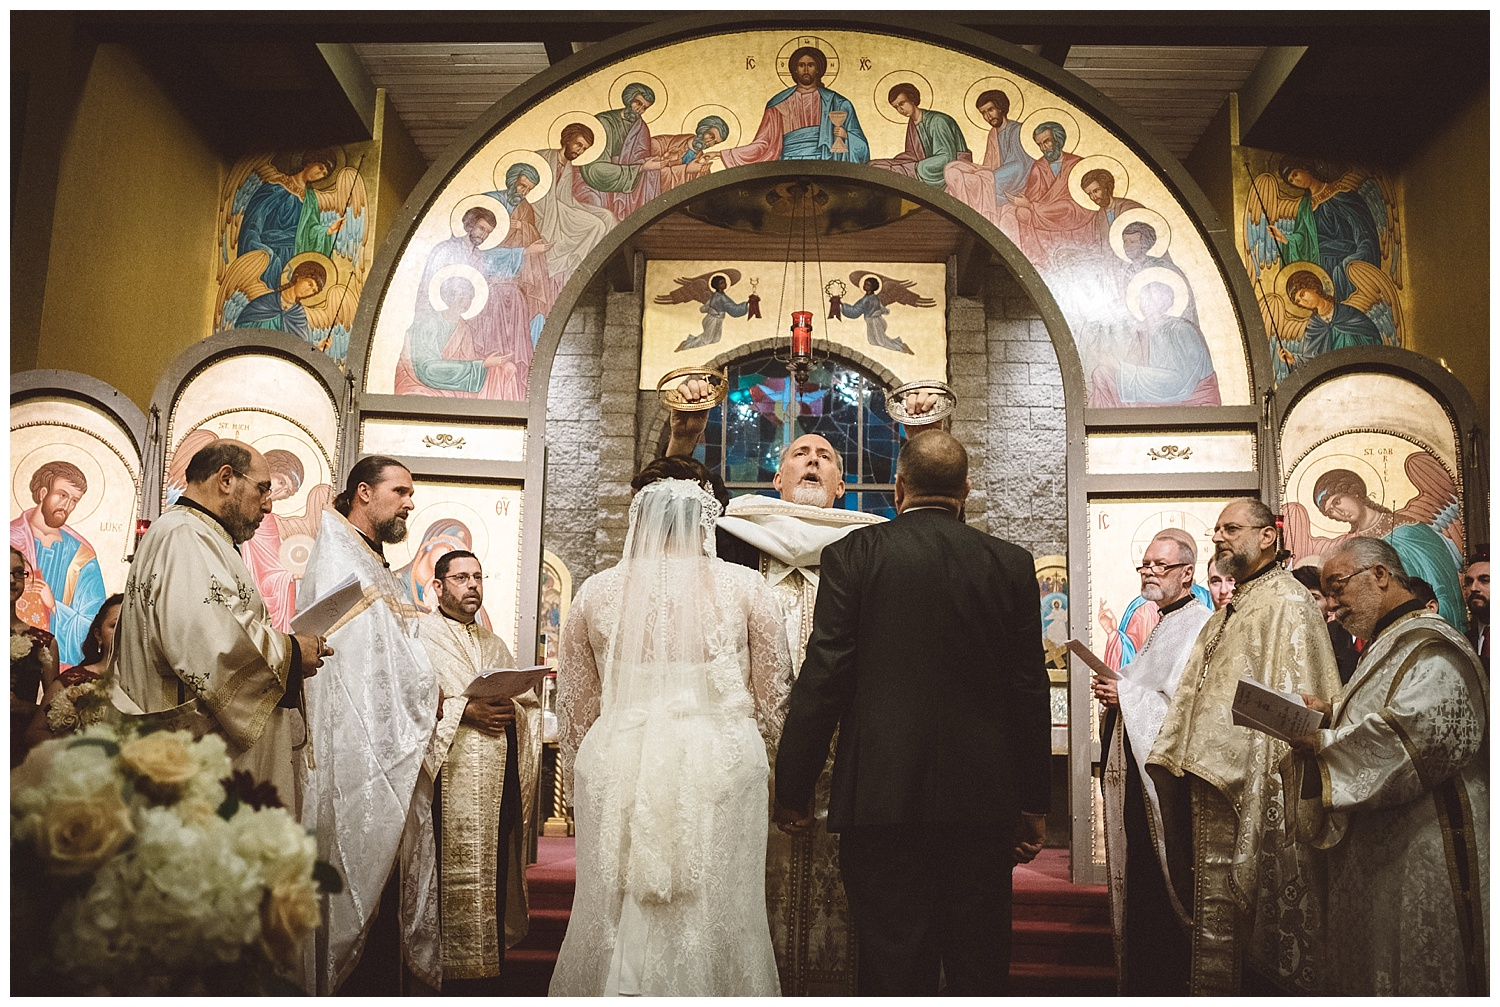 Orthodox priest Fr. Michael Tassos places wedding crowns on bride and groom